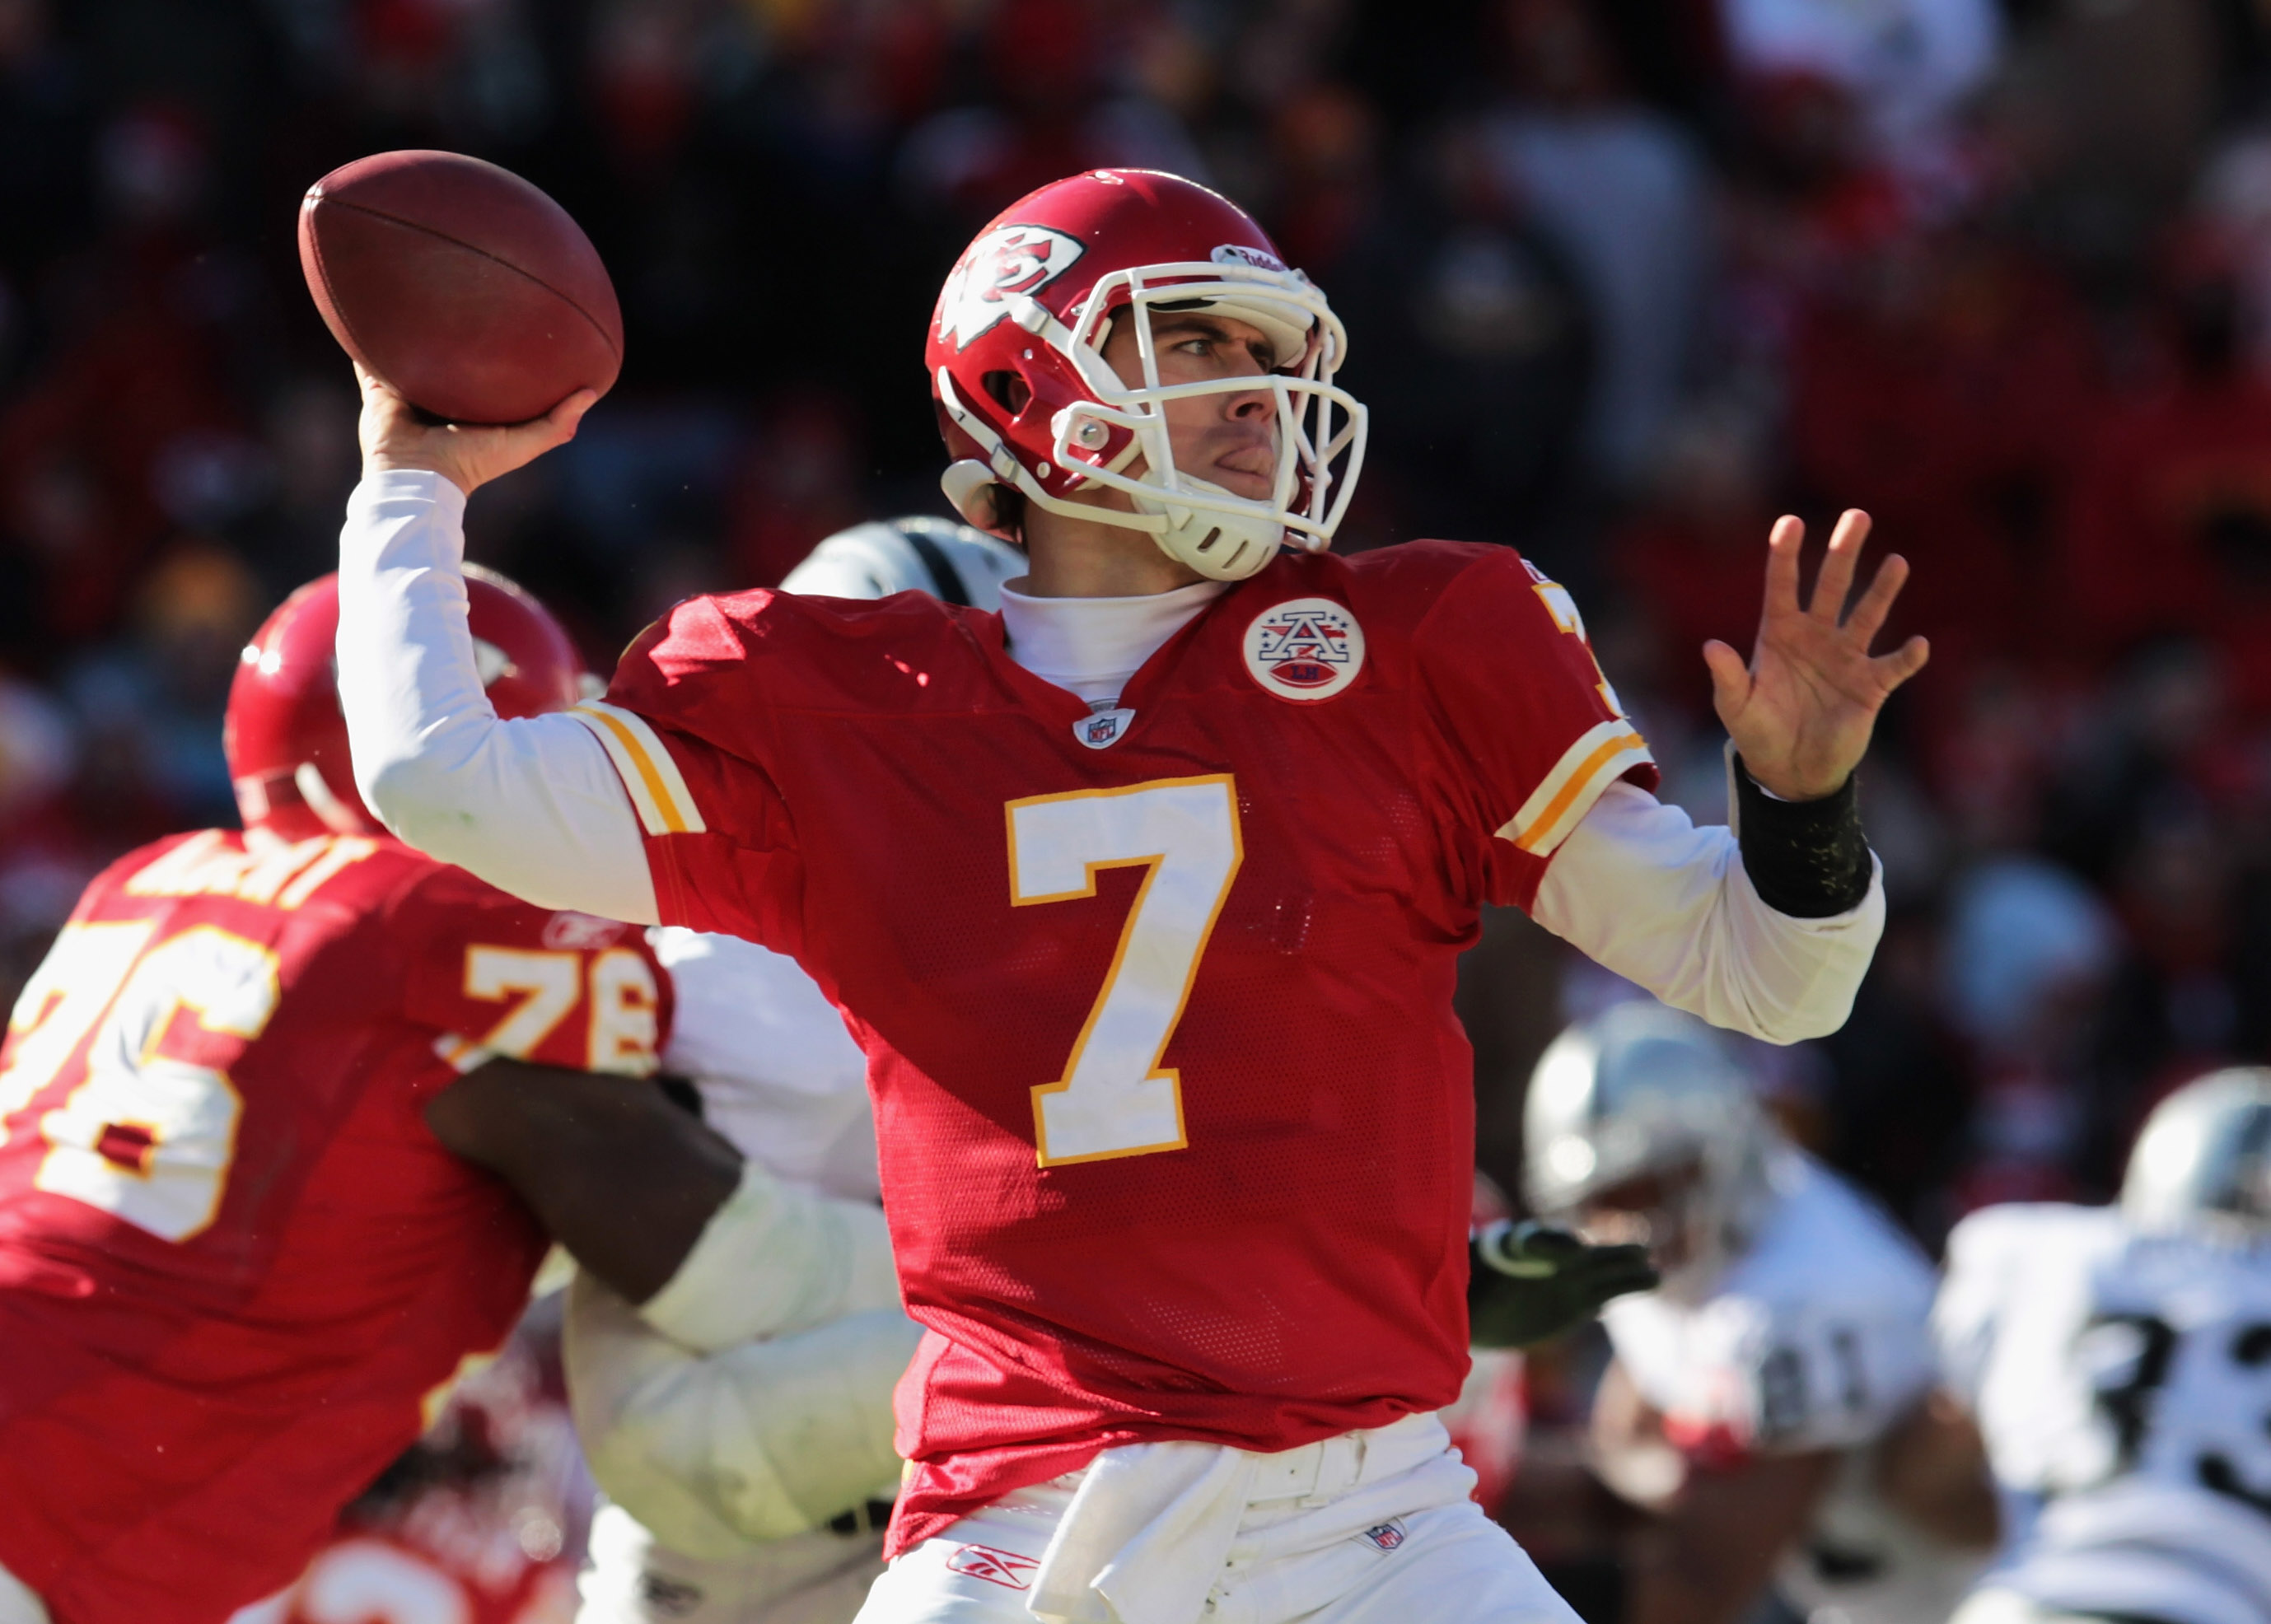 KANSAS CITY, MO - JANUARY 02:  Quarterback Matt Cassel #7 of the Kansas City Chiefs passes during the game against the Oakland Raiders on January 2, 2011 at Arrowhead Stadium in Kansas City, Missouri.  (Photo by Jamie Squire/Getty Images)